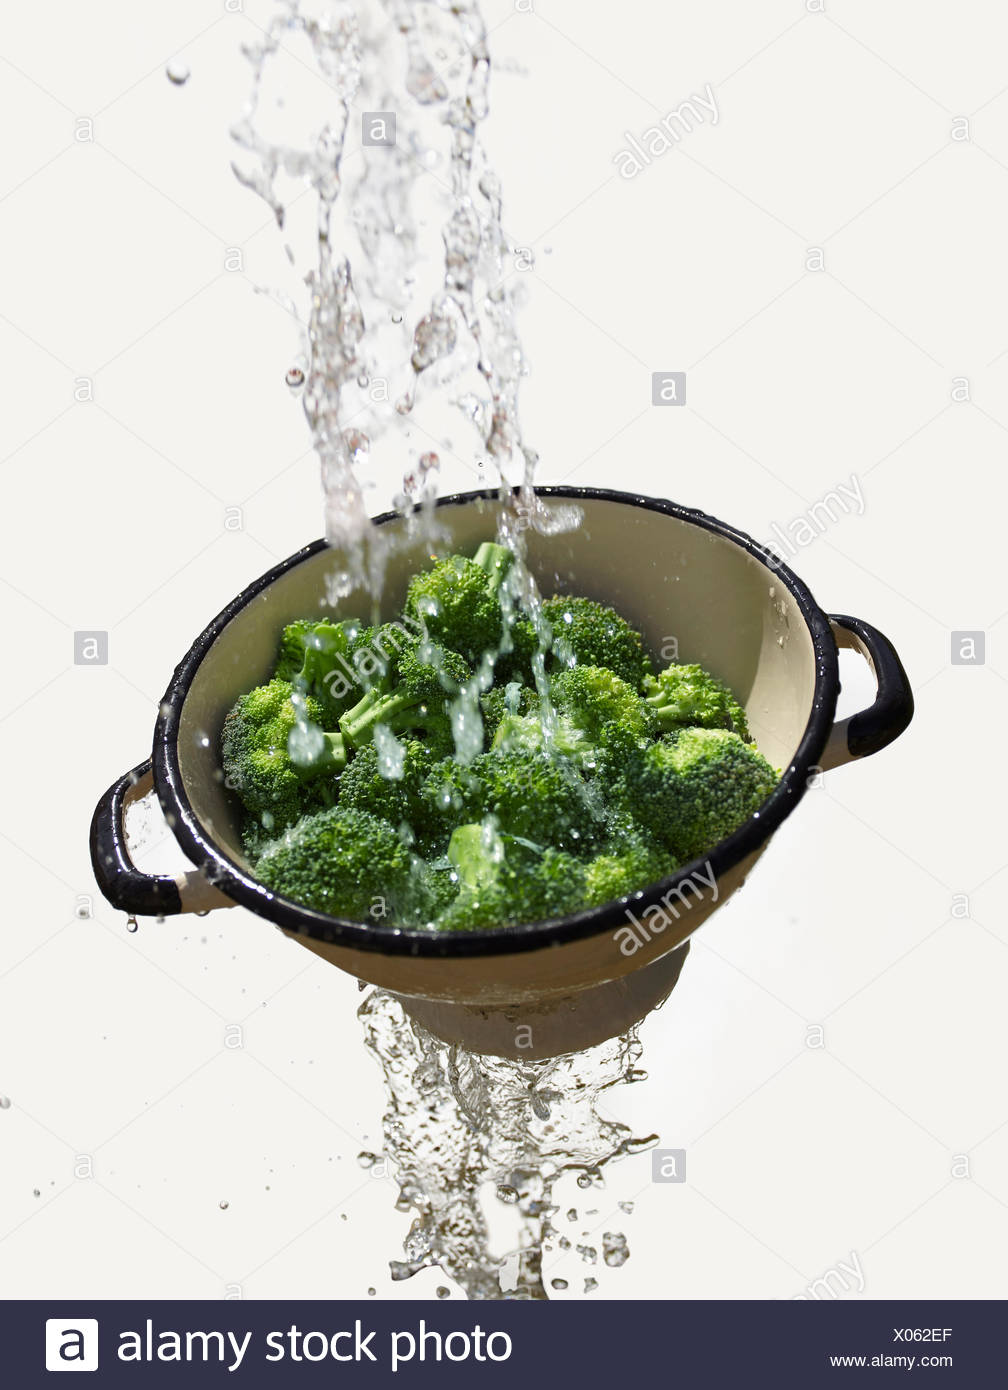 Water falling through colander with fresh broccoli - Stock Image